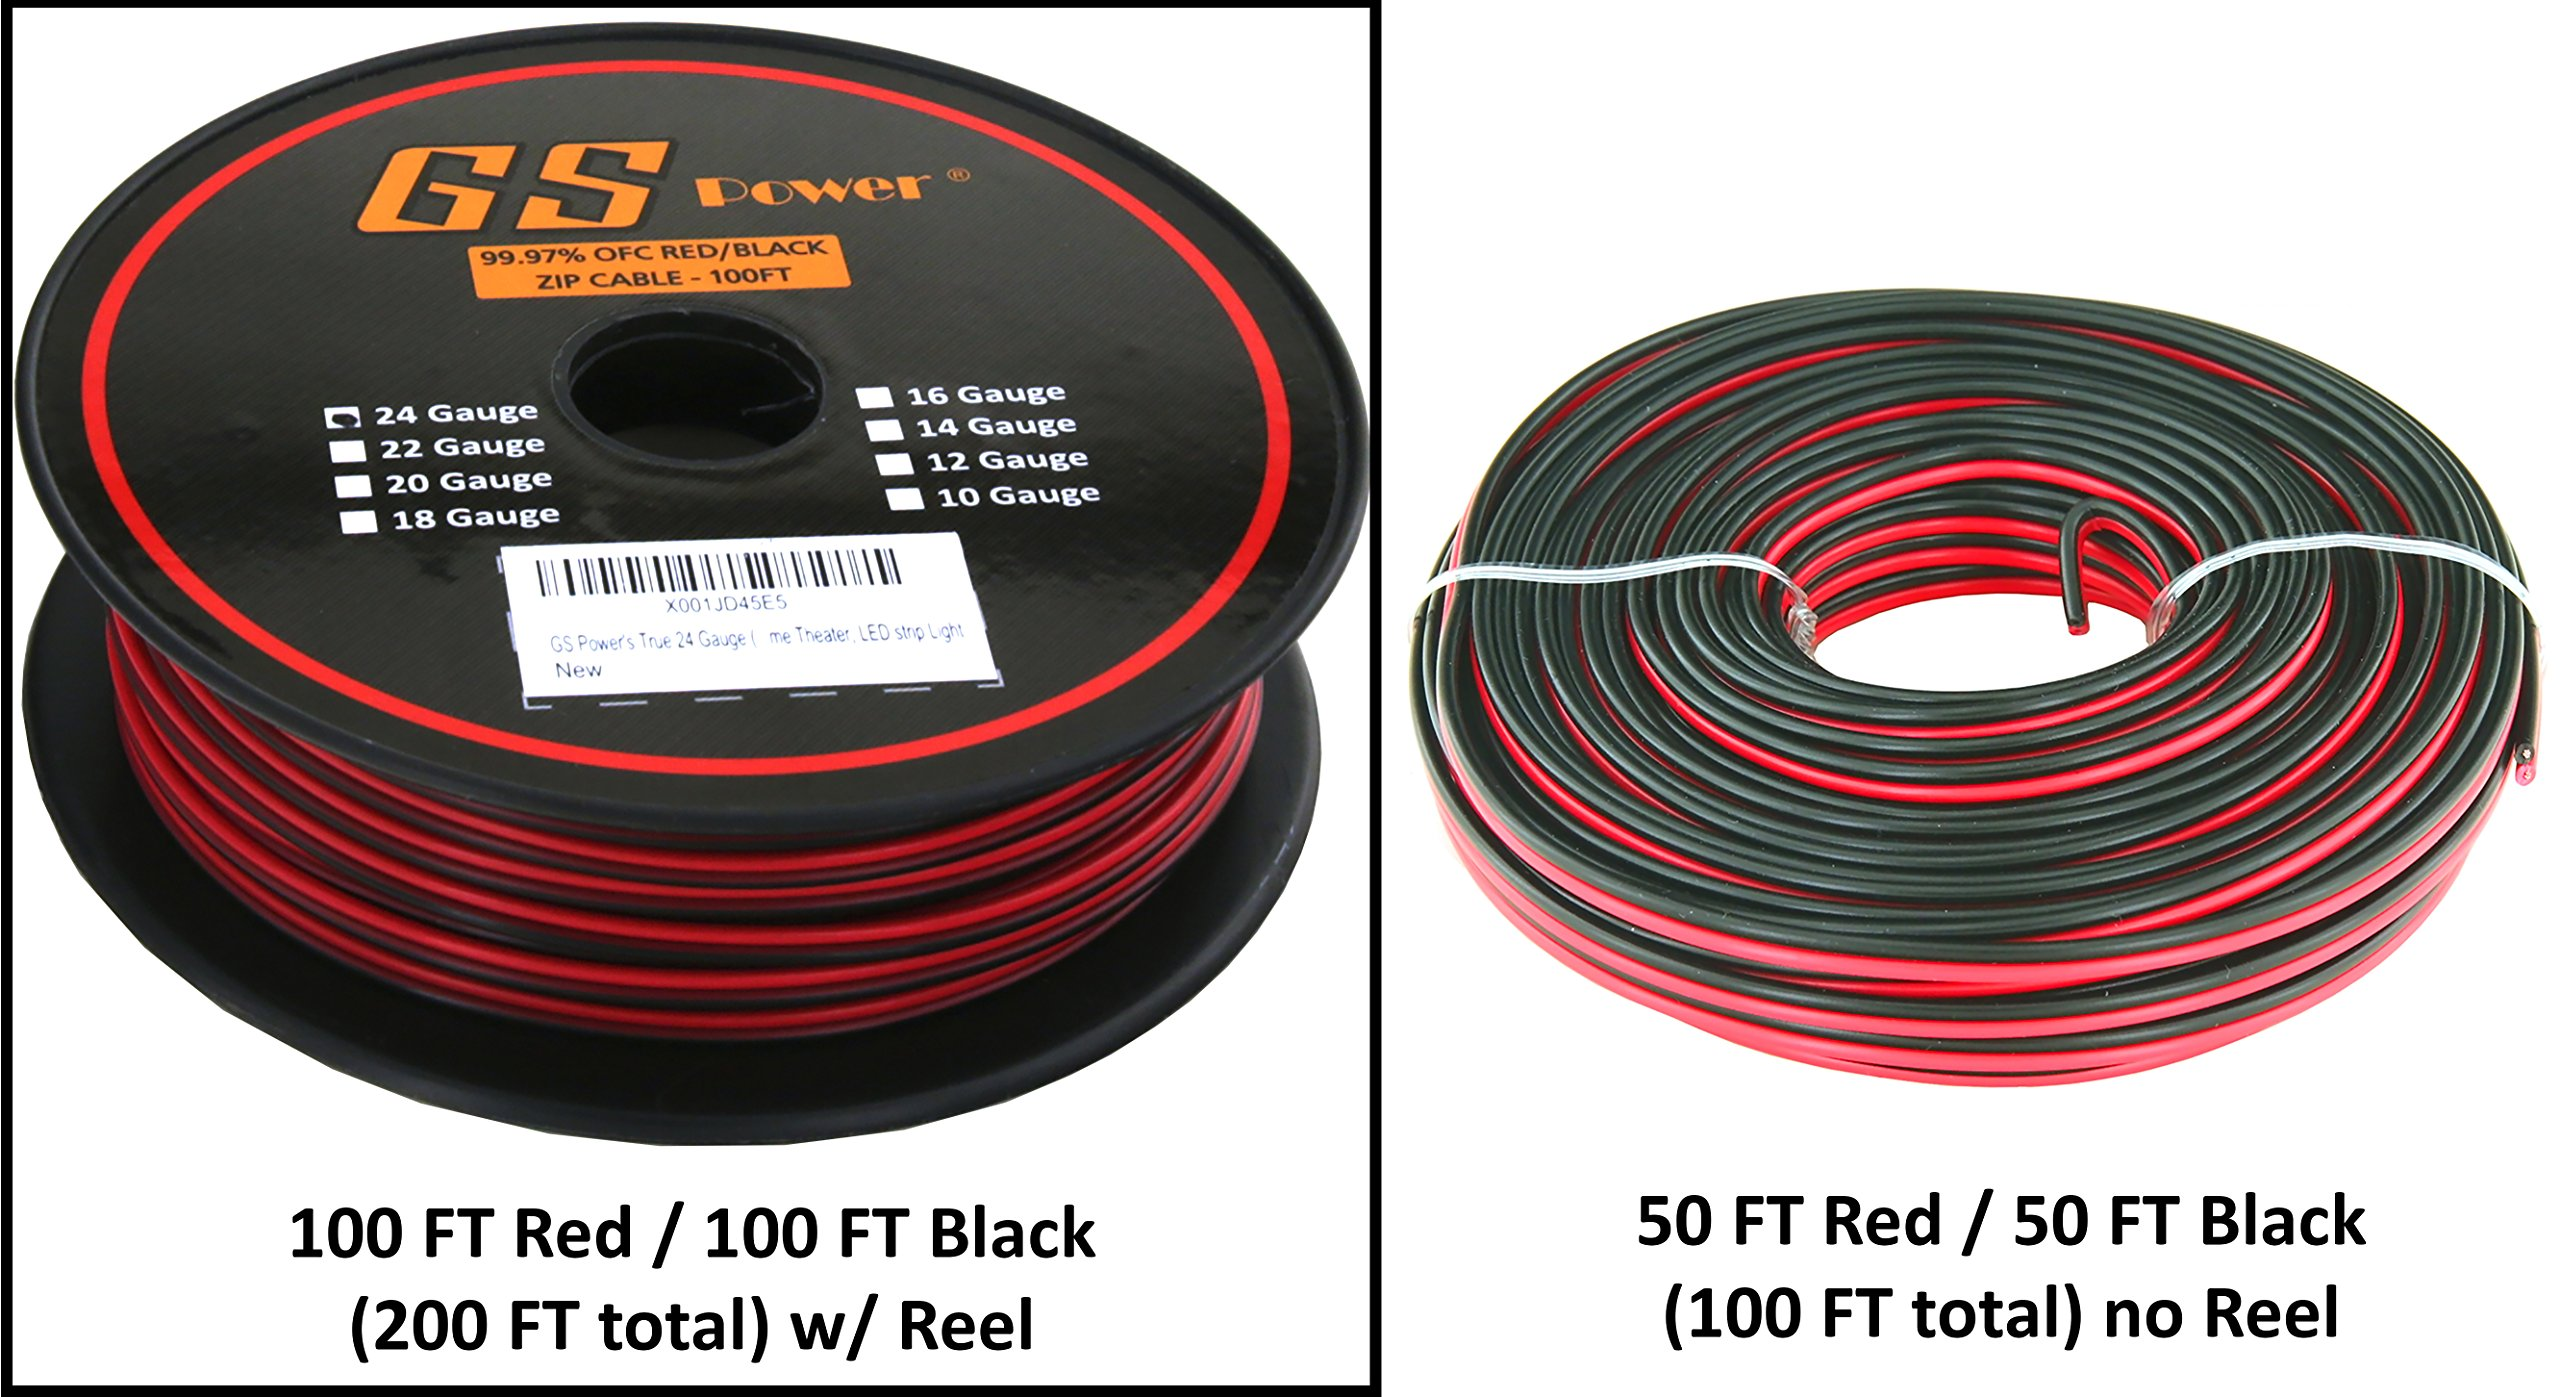 True 24 Gauge (American Wire Ga) 99.97% OFC stranded oxygen free copper, Red / Black 2 Conductor Bonded Zip Cord Power / Speaker Cable for Car Audio, Home Theater, LED Light. Choice of 50 or 100 FT